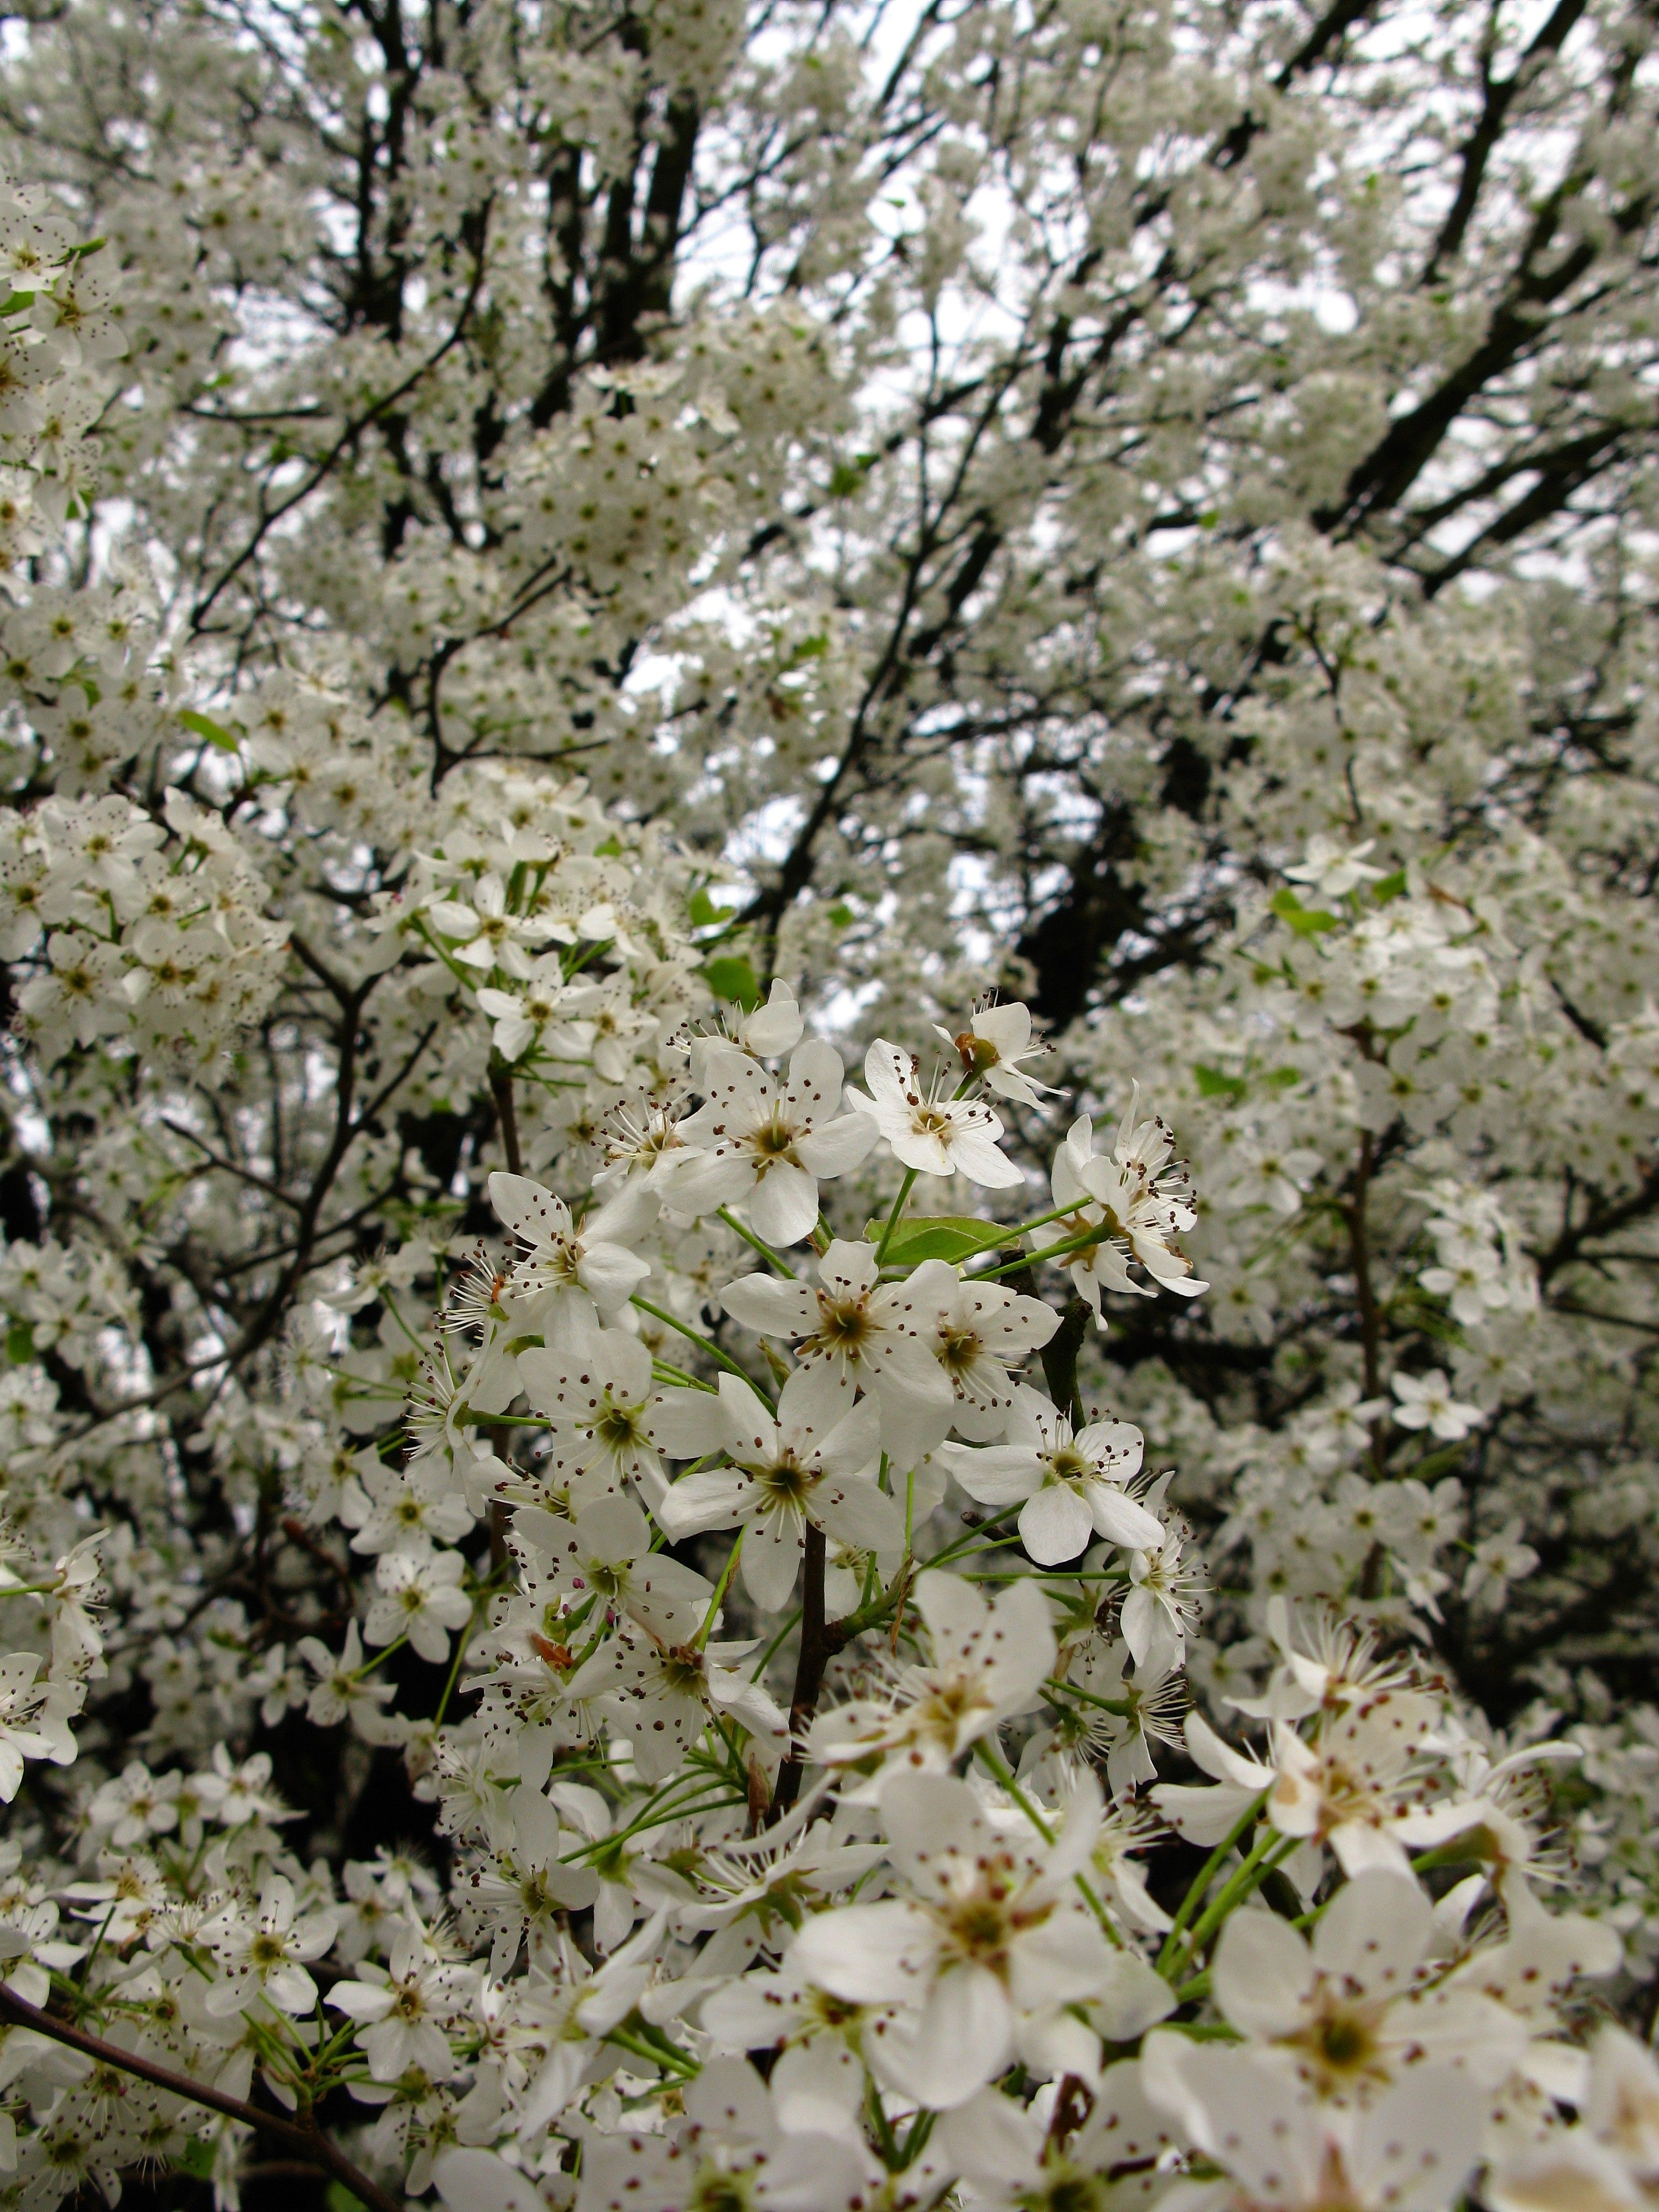 100 Tree With White Flowers That Smell Good Floralplants C